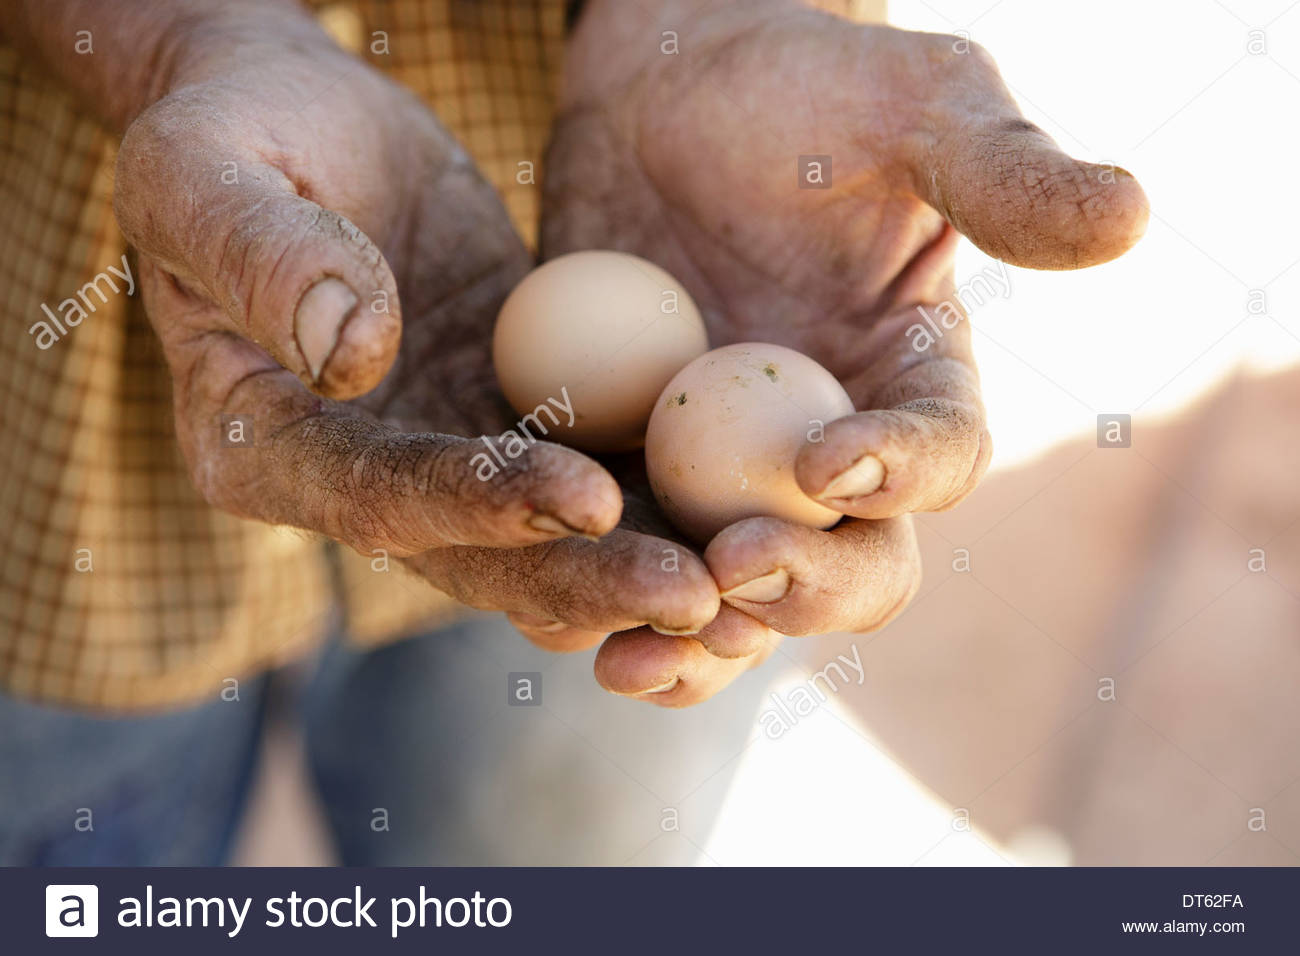 Farmer holding two eggs - Stock Image